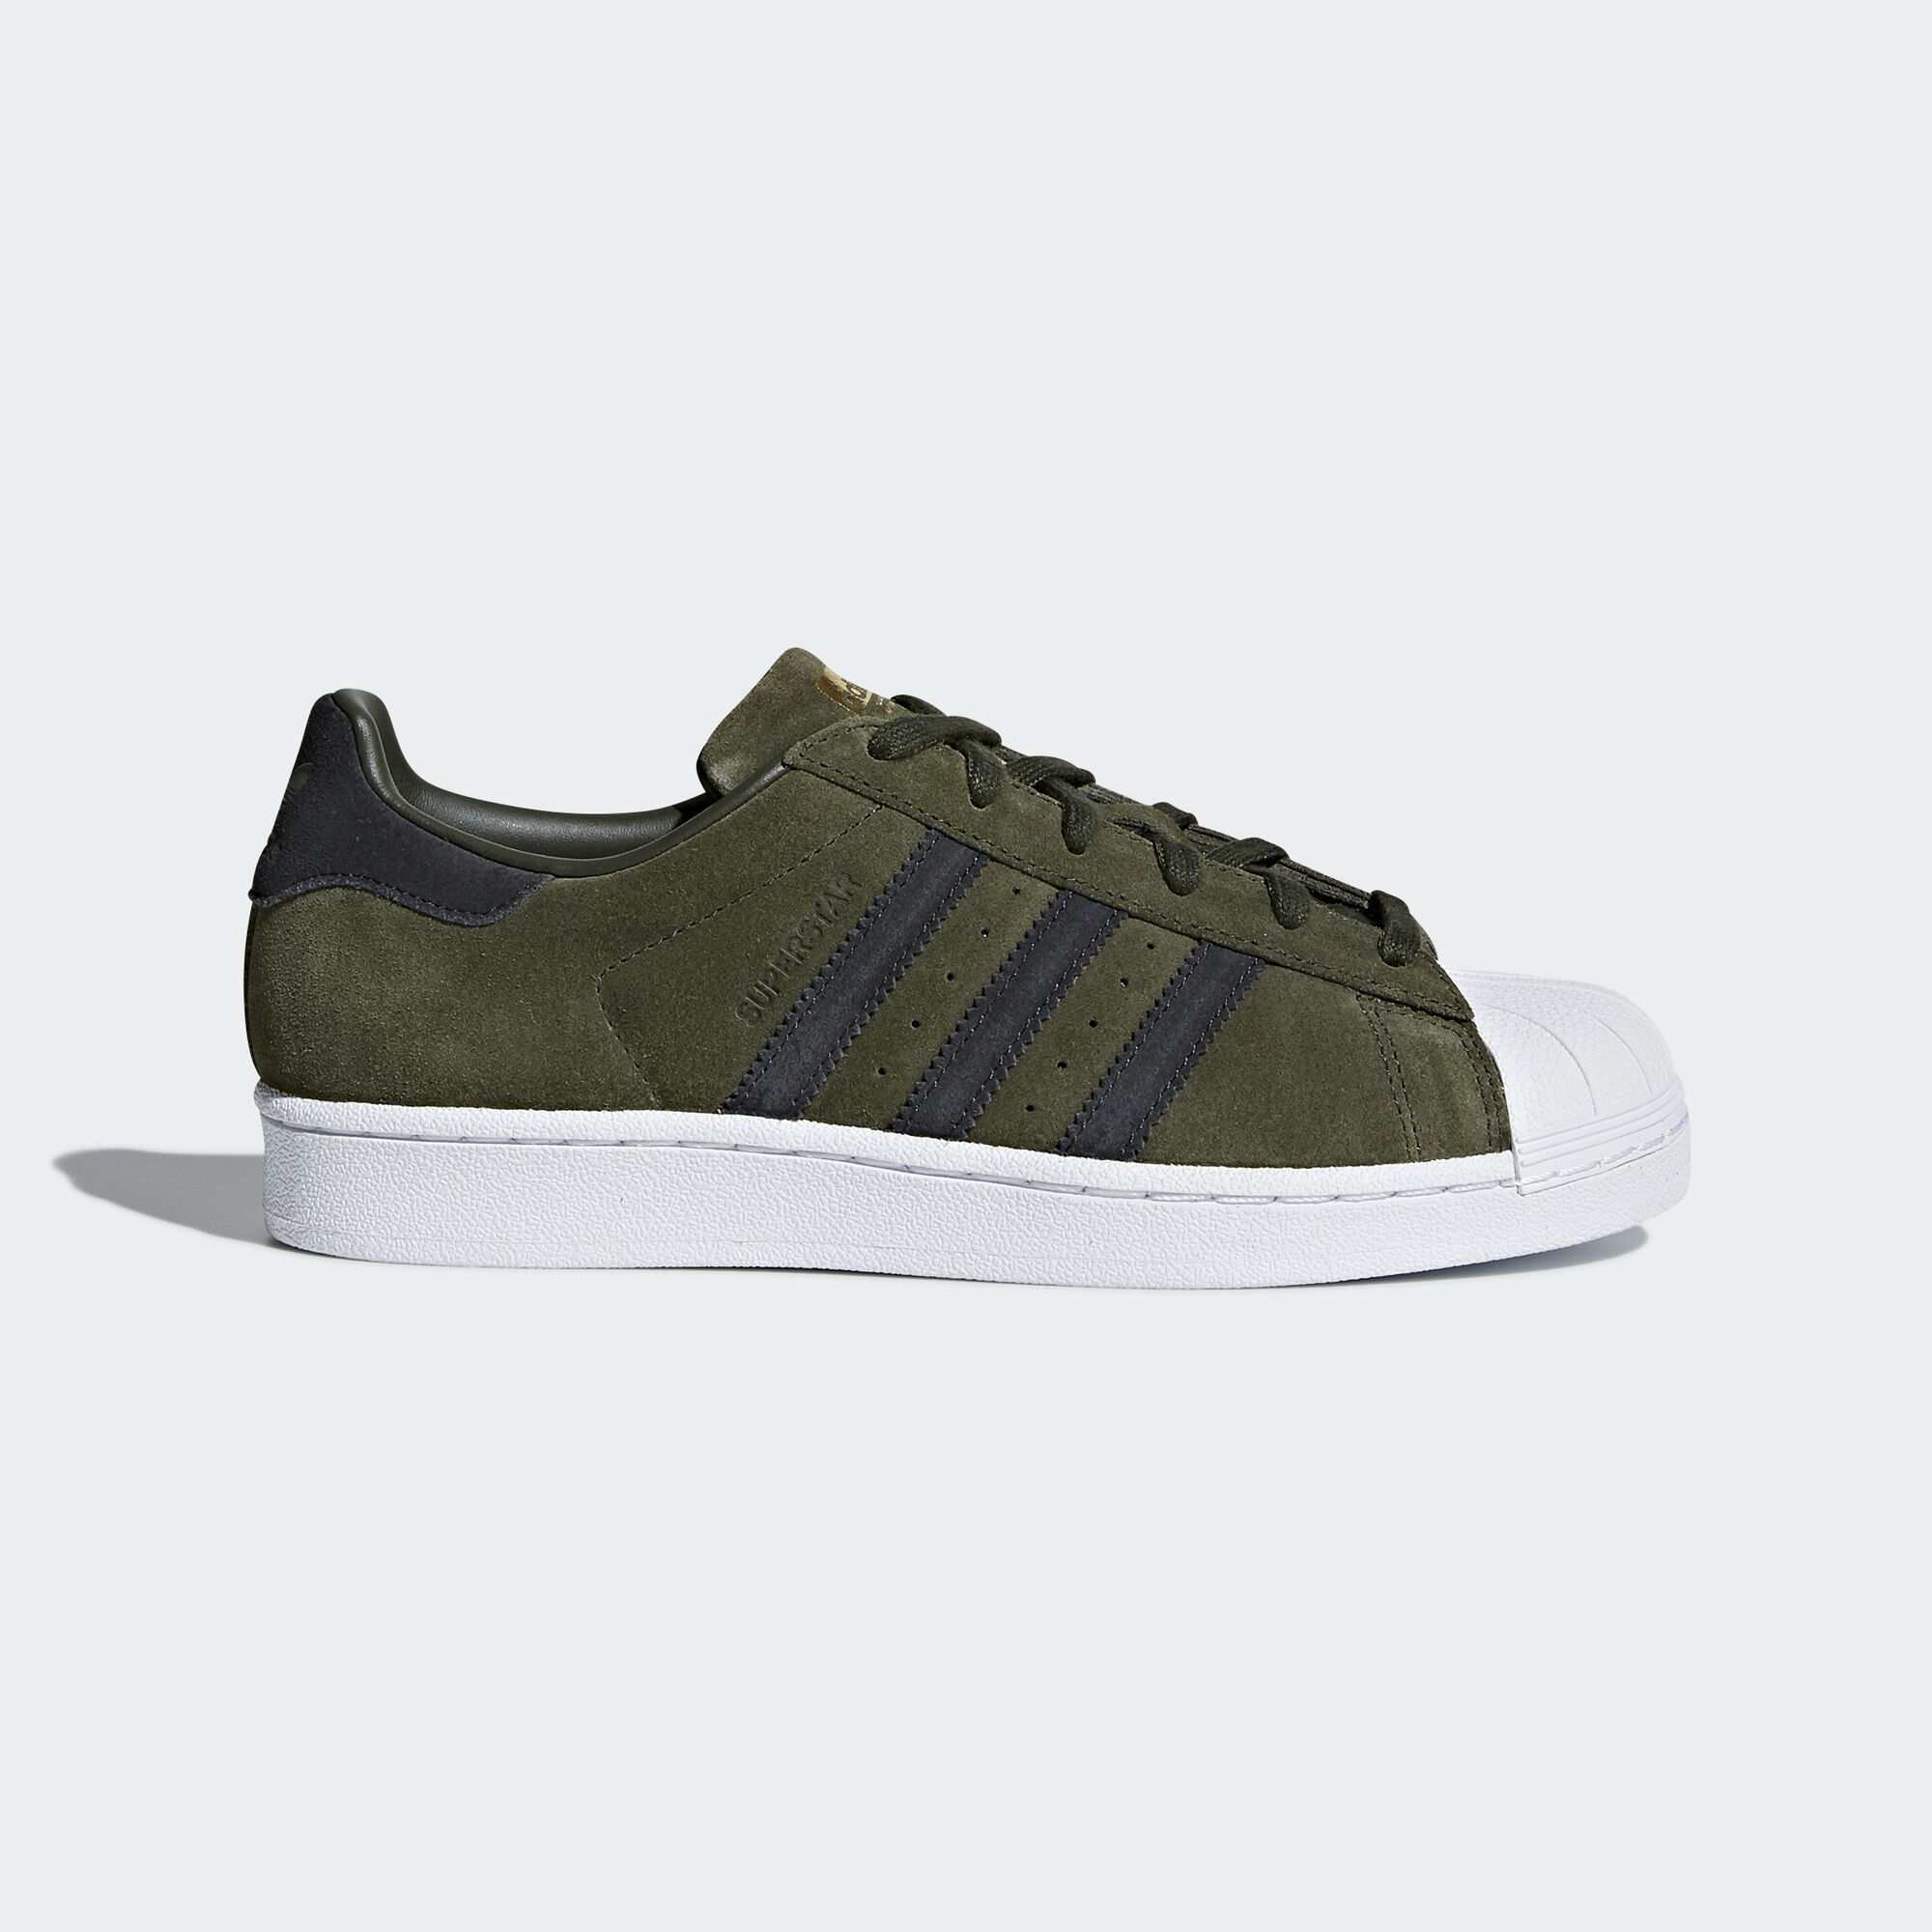 Adidas Superstar verde